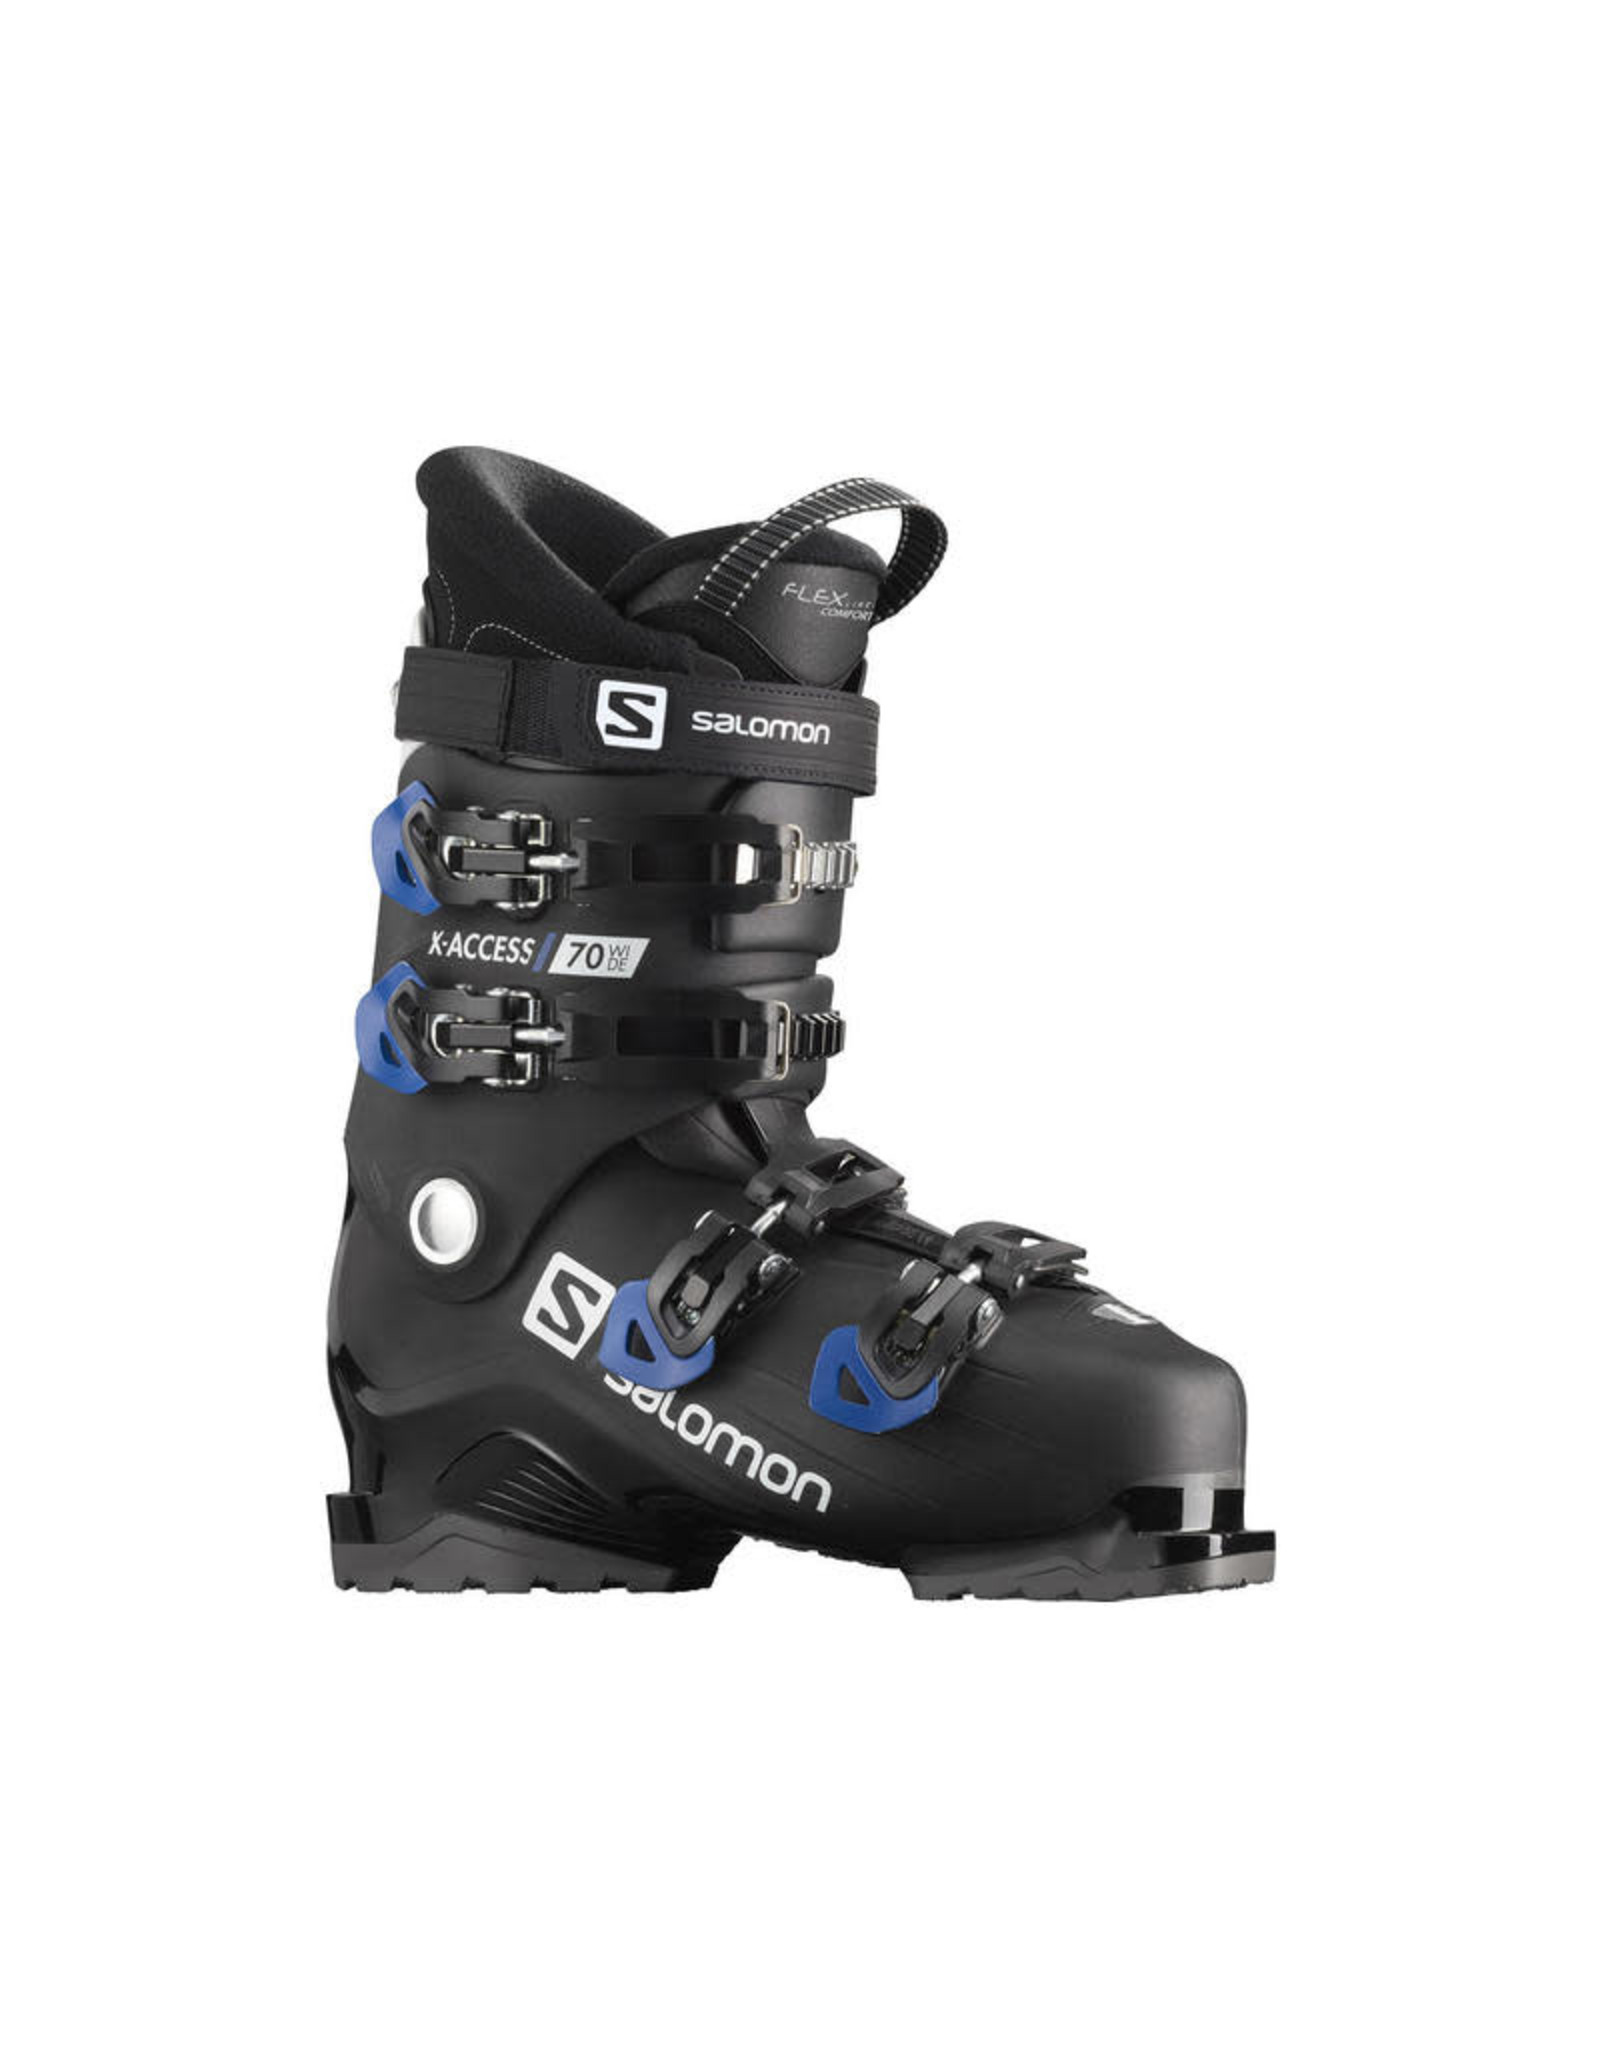 SALOMON SKI BOOT SALOMON X ACCESS 70 WIDE